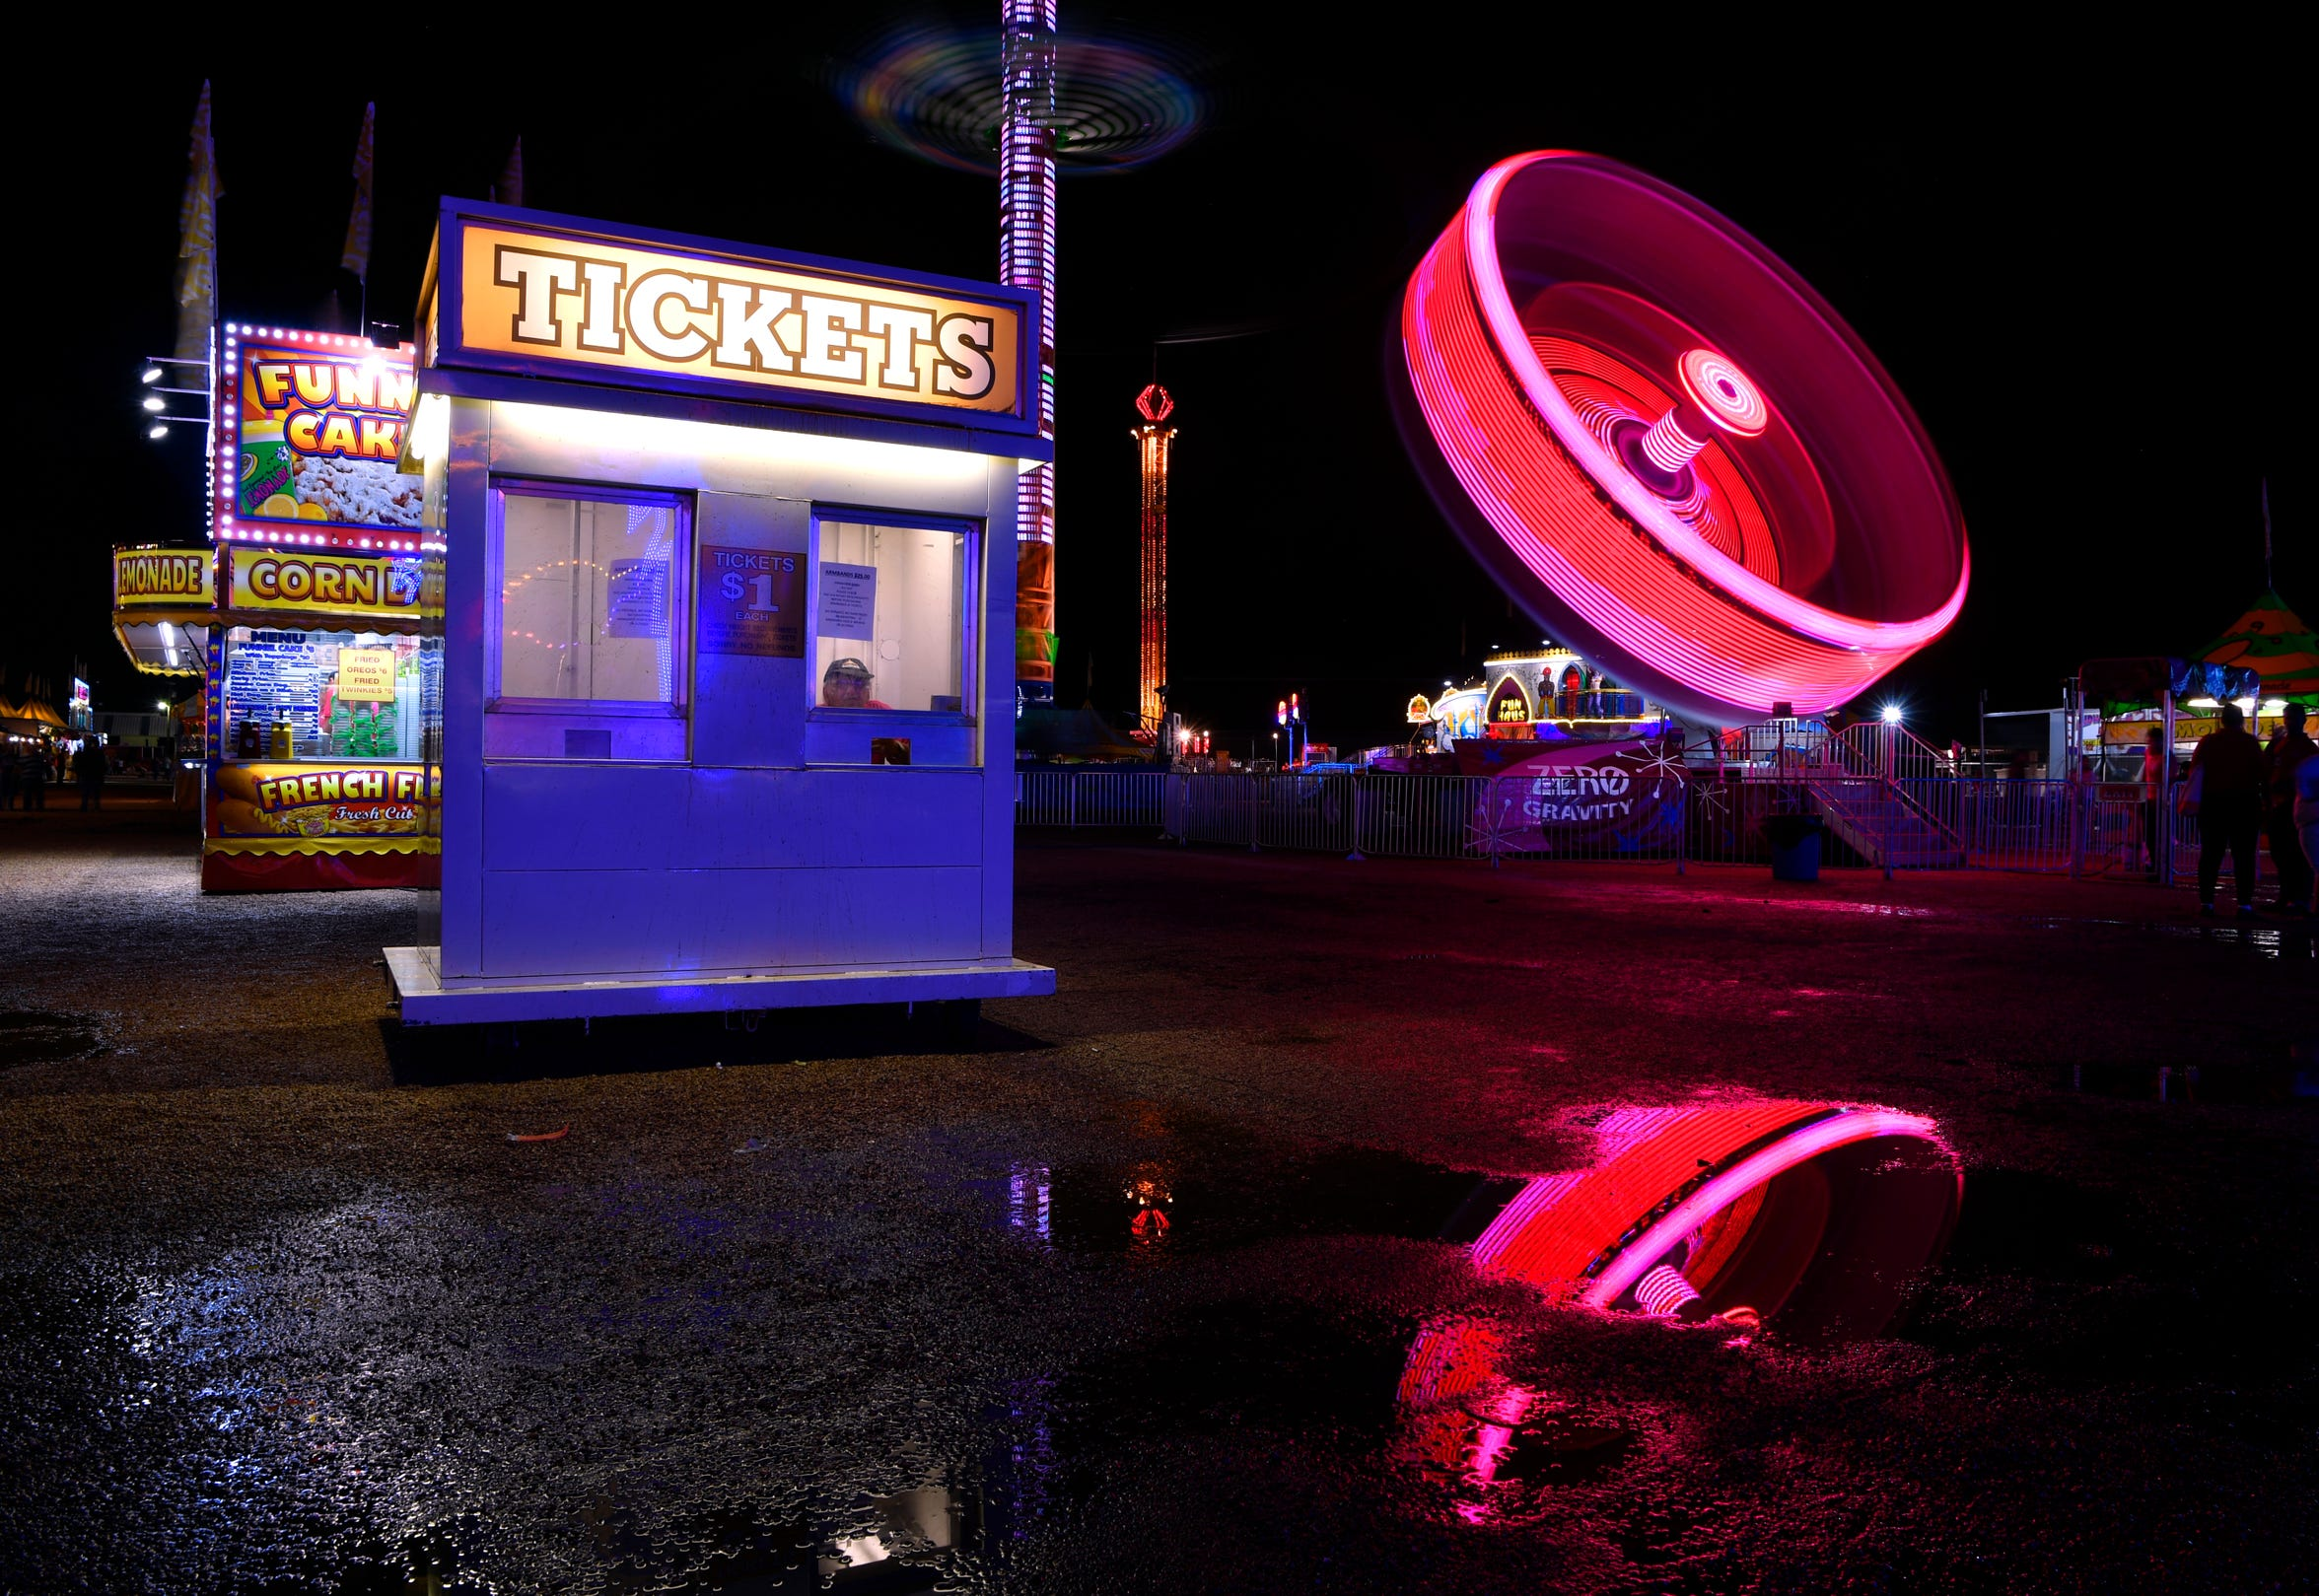 A salesman sits in the window of a ticket booth at the West Texas Fair & Rodeo Thursday Sept. 6, 2018 as the Zero Gravity ride spins in the background. The motion of the attraction and its colored lights created this blurred image thanks to a long exposure.